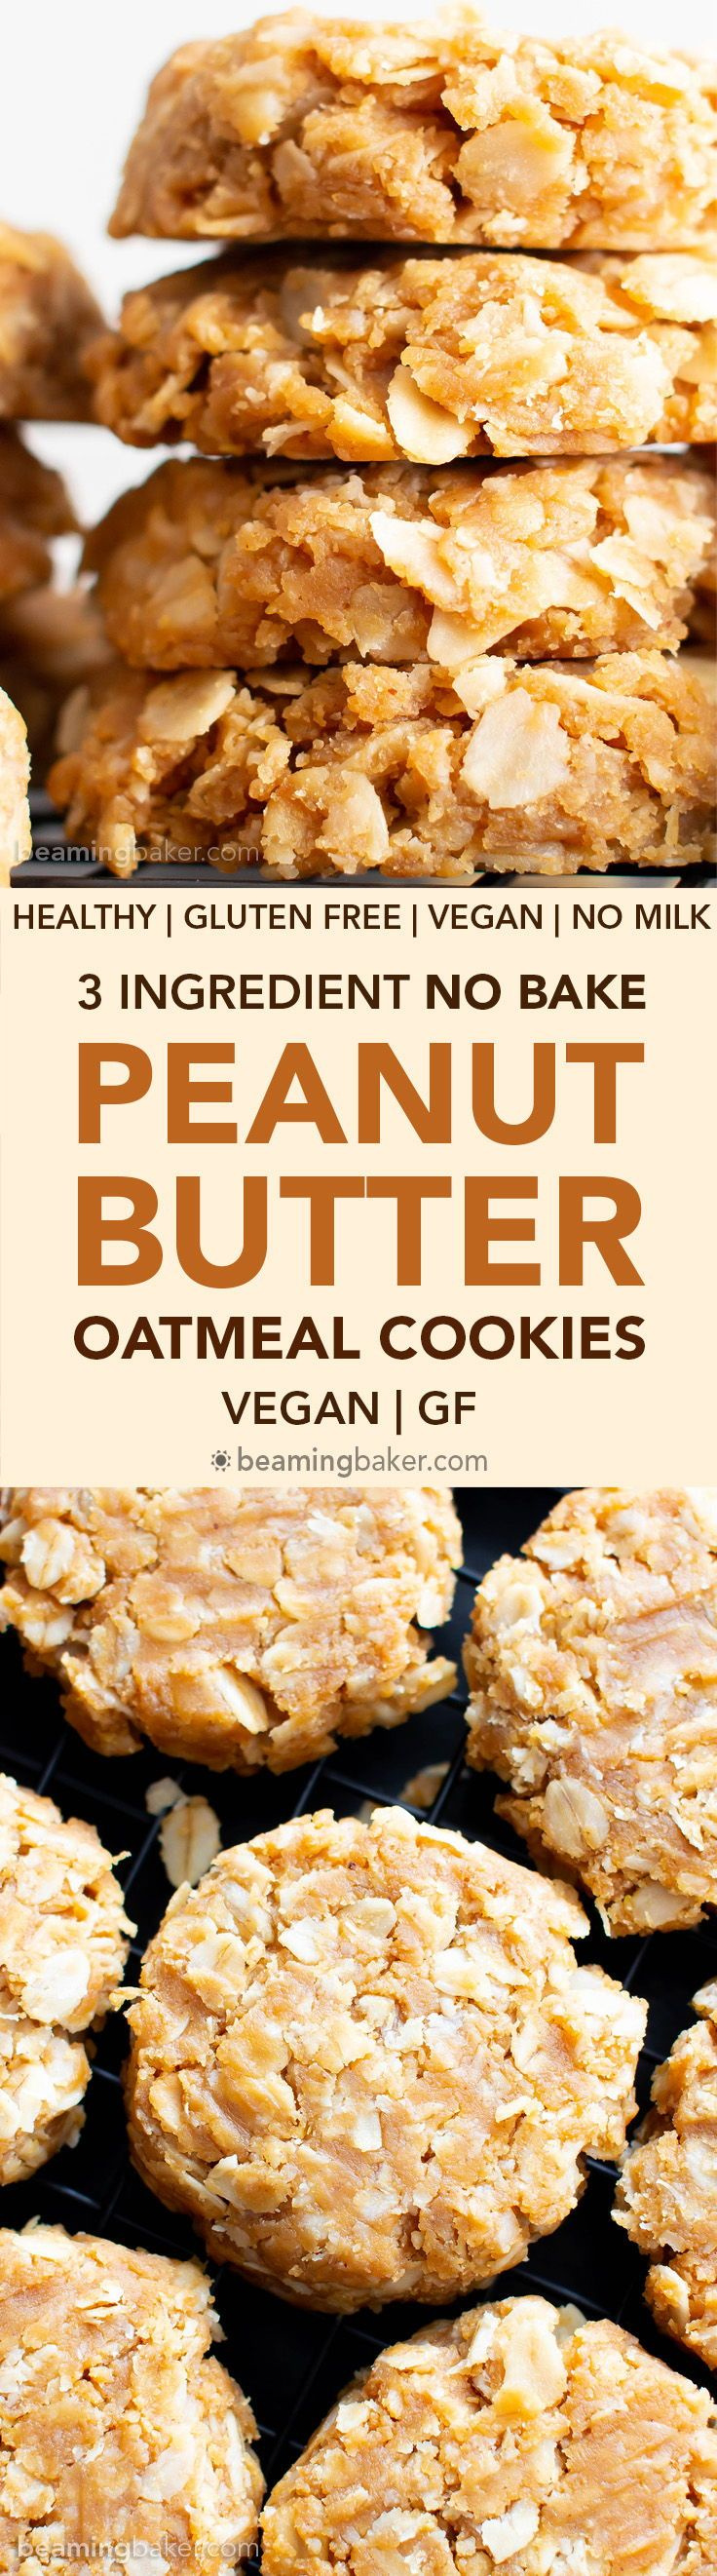 3 Ingredient No Bake Peanut Butter Oatmeal Cookies Super Easy